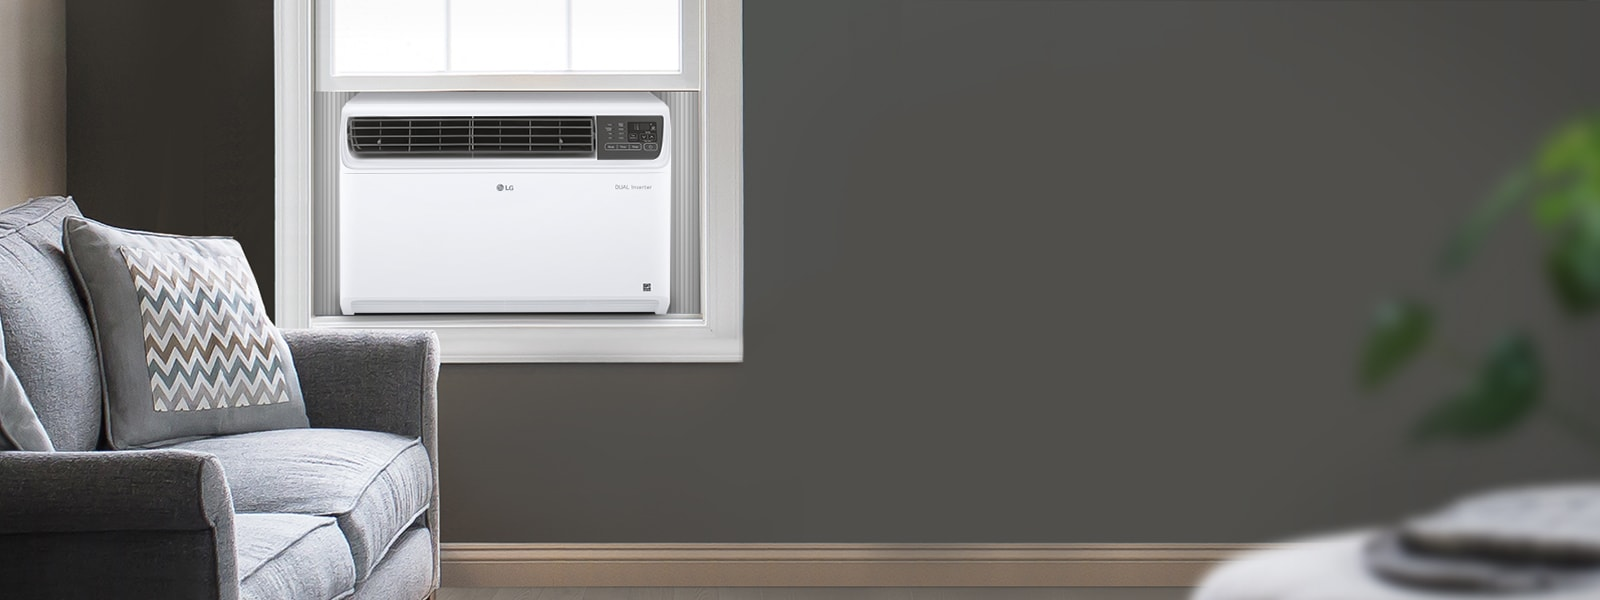 LG Window Air Conditioners: Efficient Cooling Performance